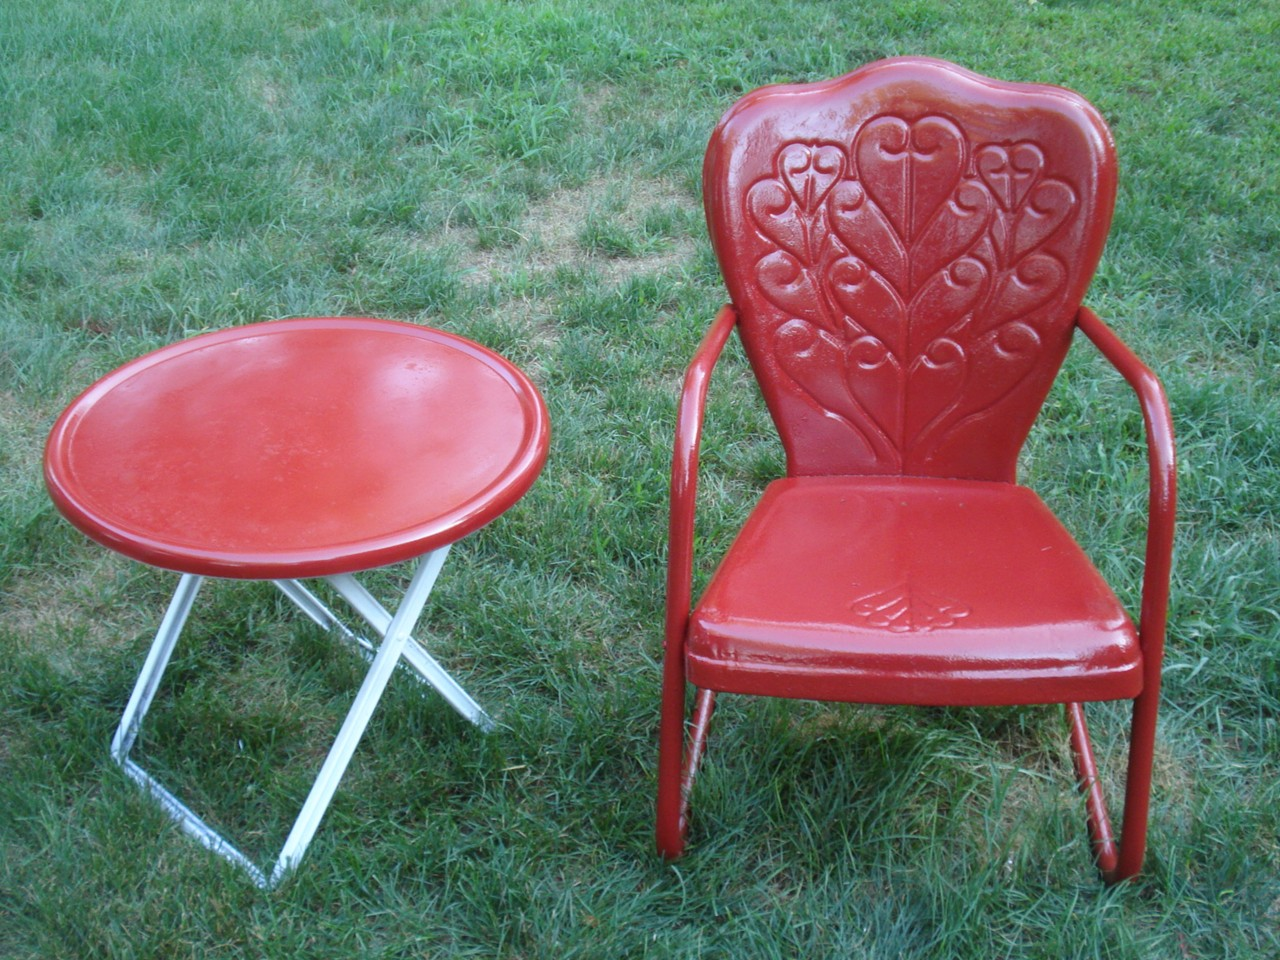 Bouncy Chair Vintage Motel Chair Bouncy Metal Lawn Chair And Sidetable Ebay